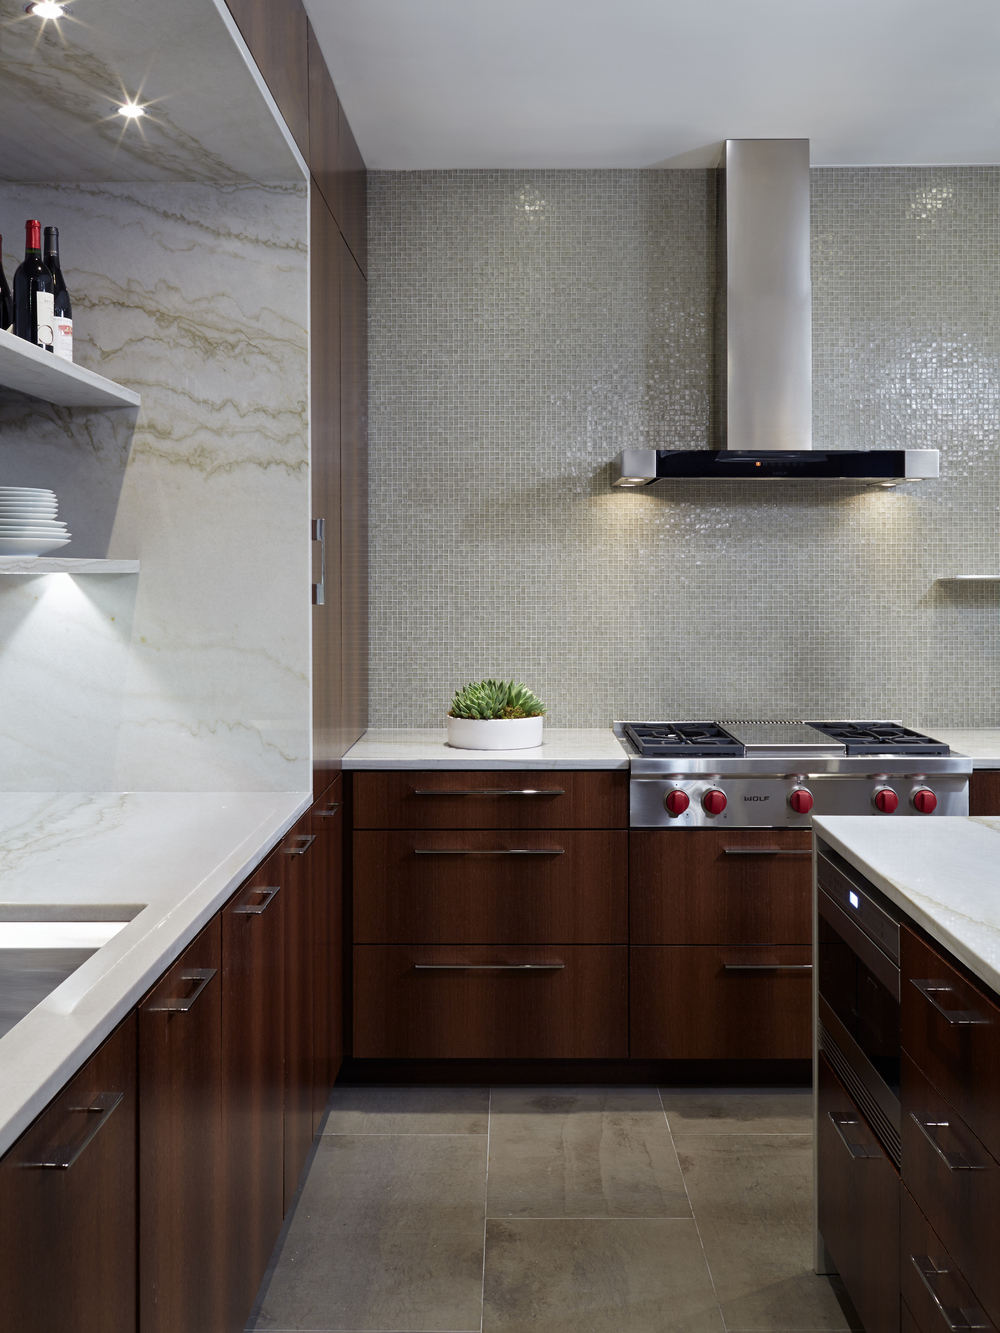 Kadlec Architecture + Design - East Lake Shore Kitchen 3.jpg